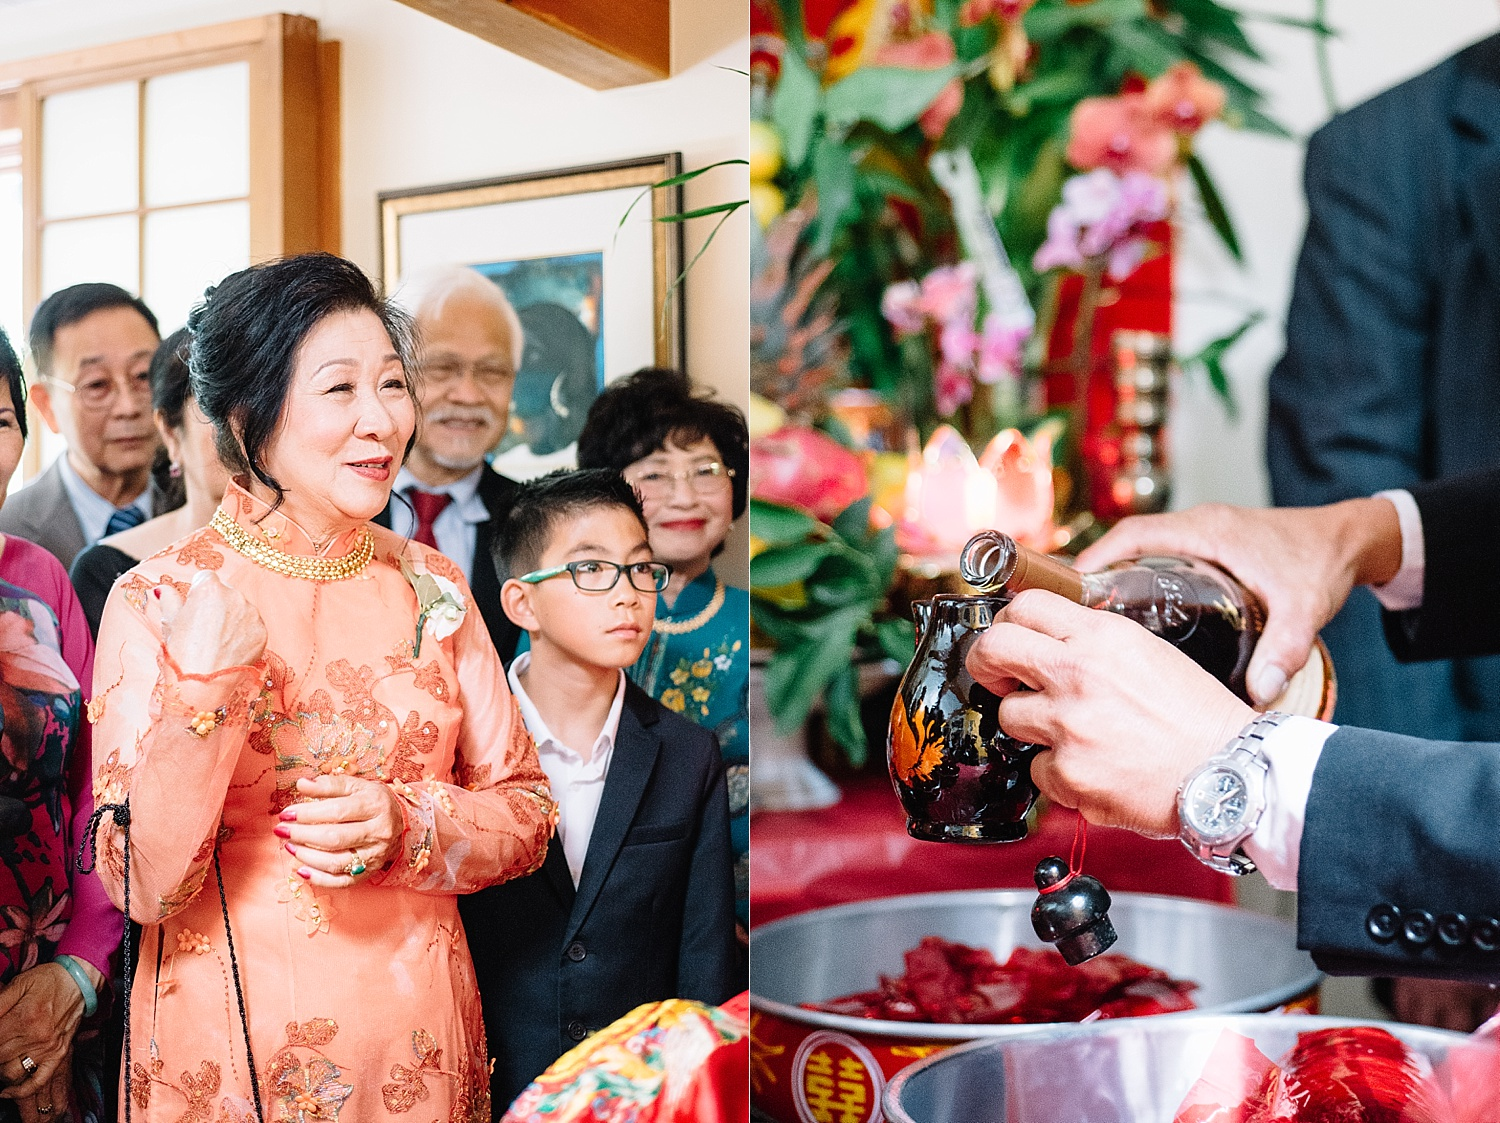 jennifer-jayn-photography-los-altos-wedding-vietnamese-tea-ceremony_0024.jpg